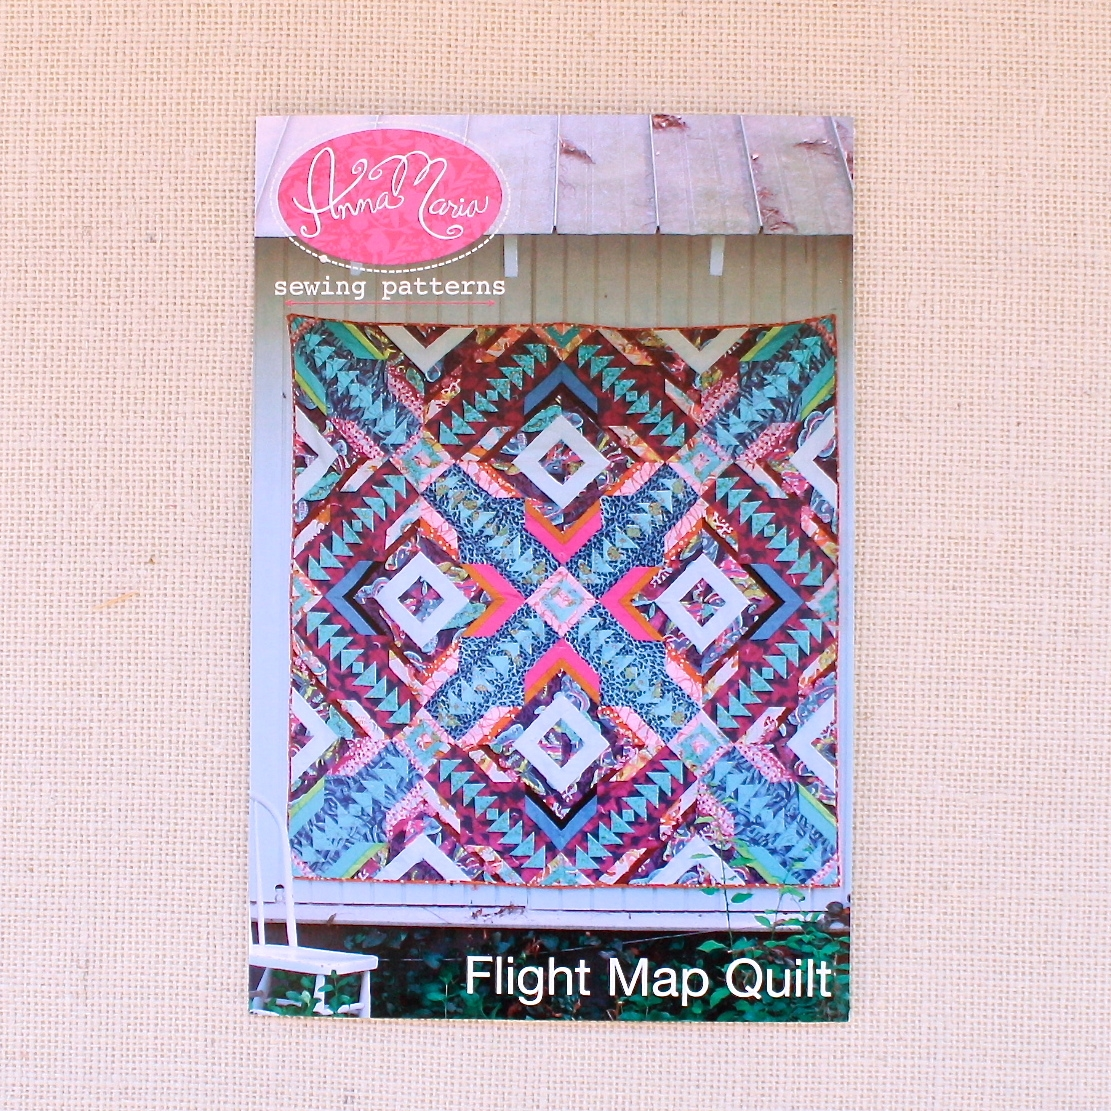 Flight Map Quilt — Craft South on